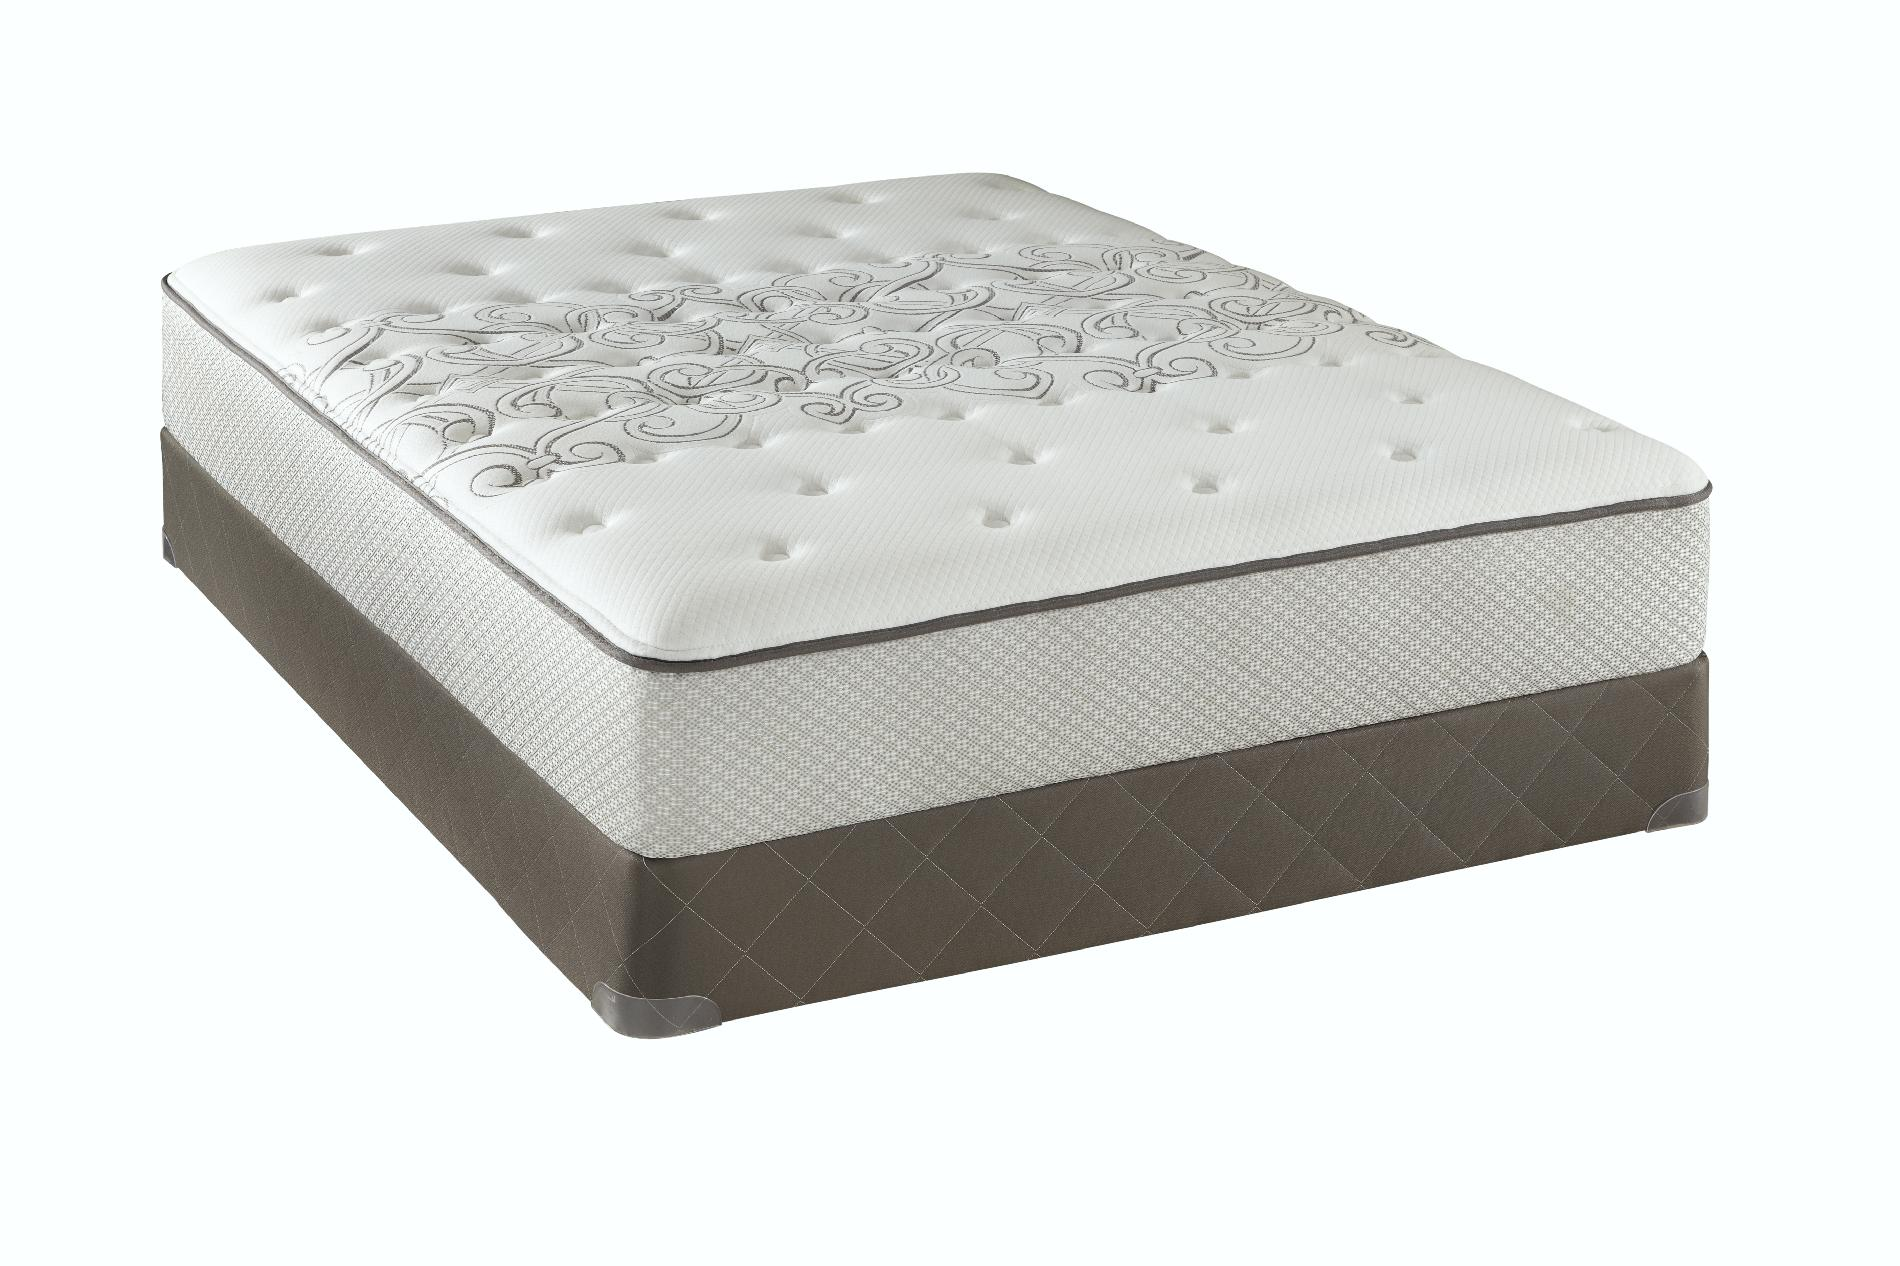 Sealy Posturepedic Cookshire Ti2, Firm, King Mattress Only